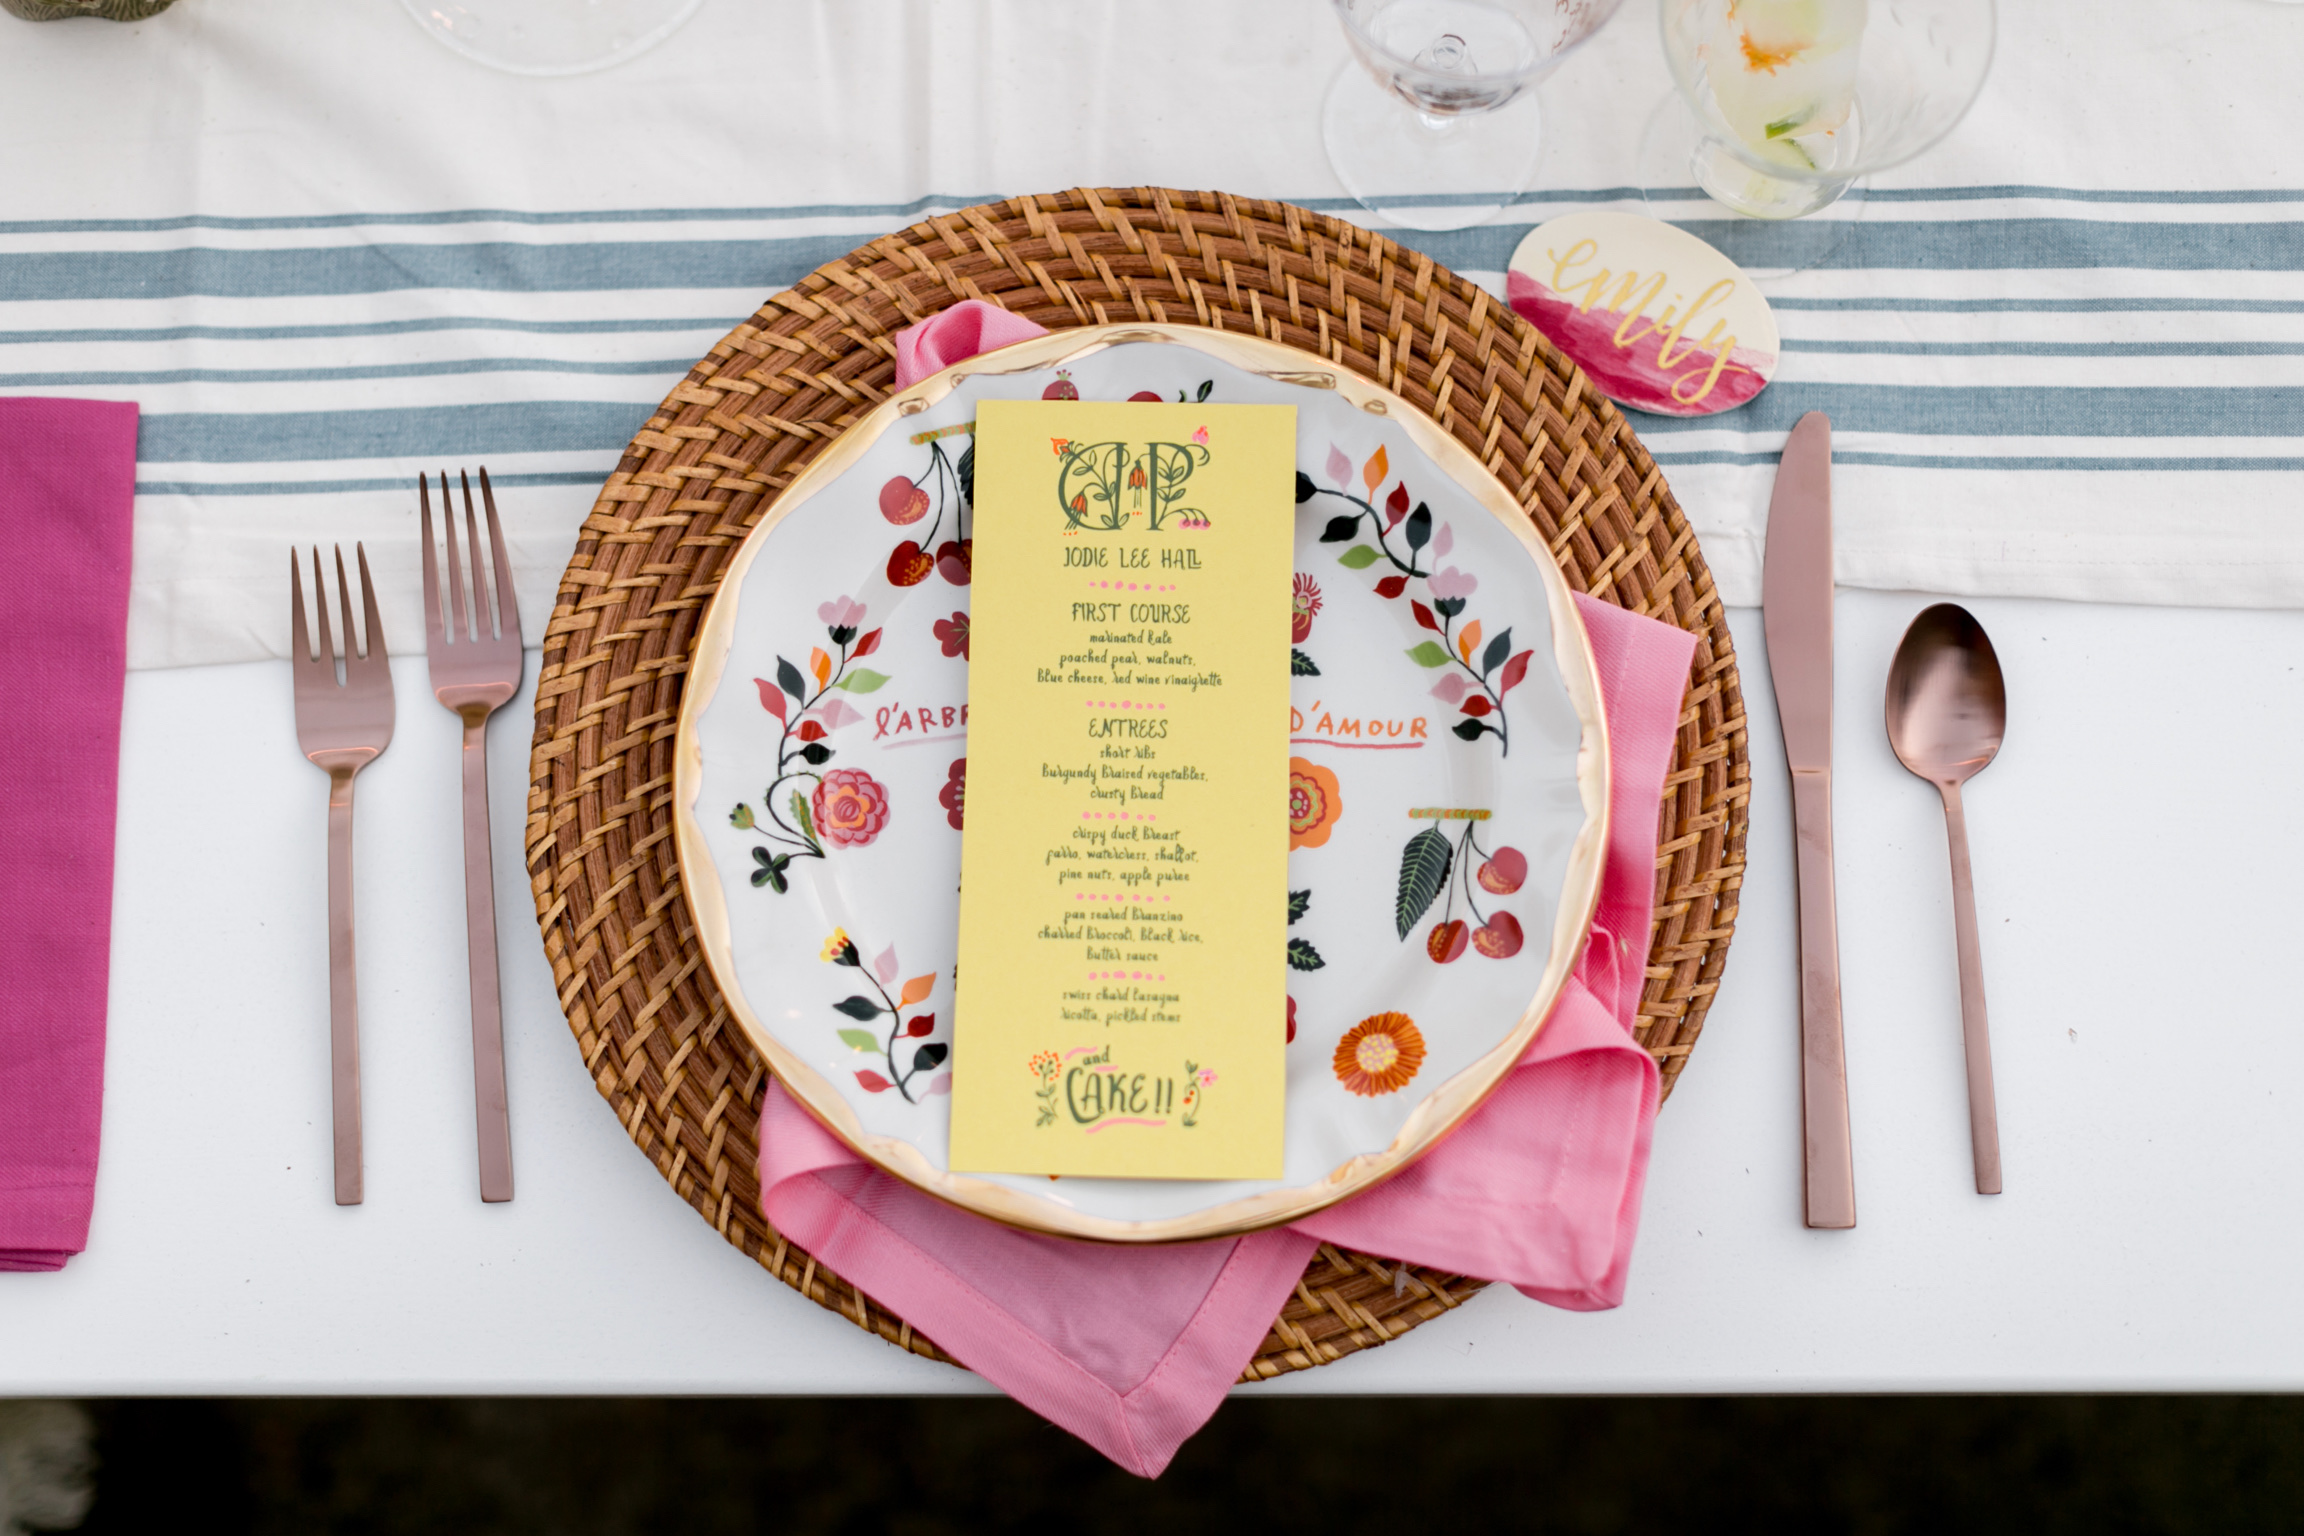 Bold and bright, happy and hippy menus topped these whimsical plates from Anthropologie.